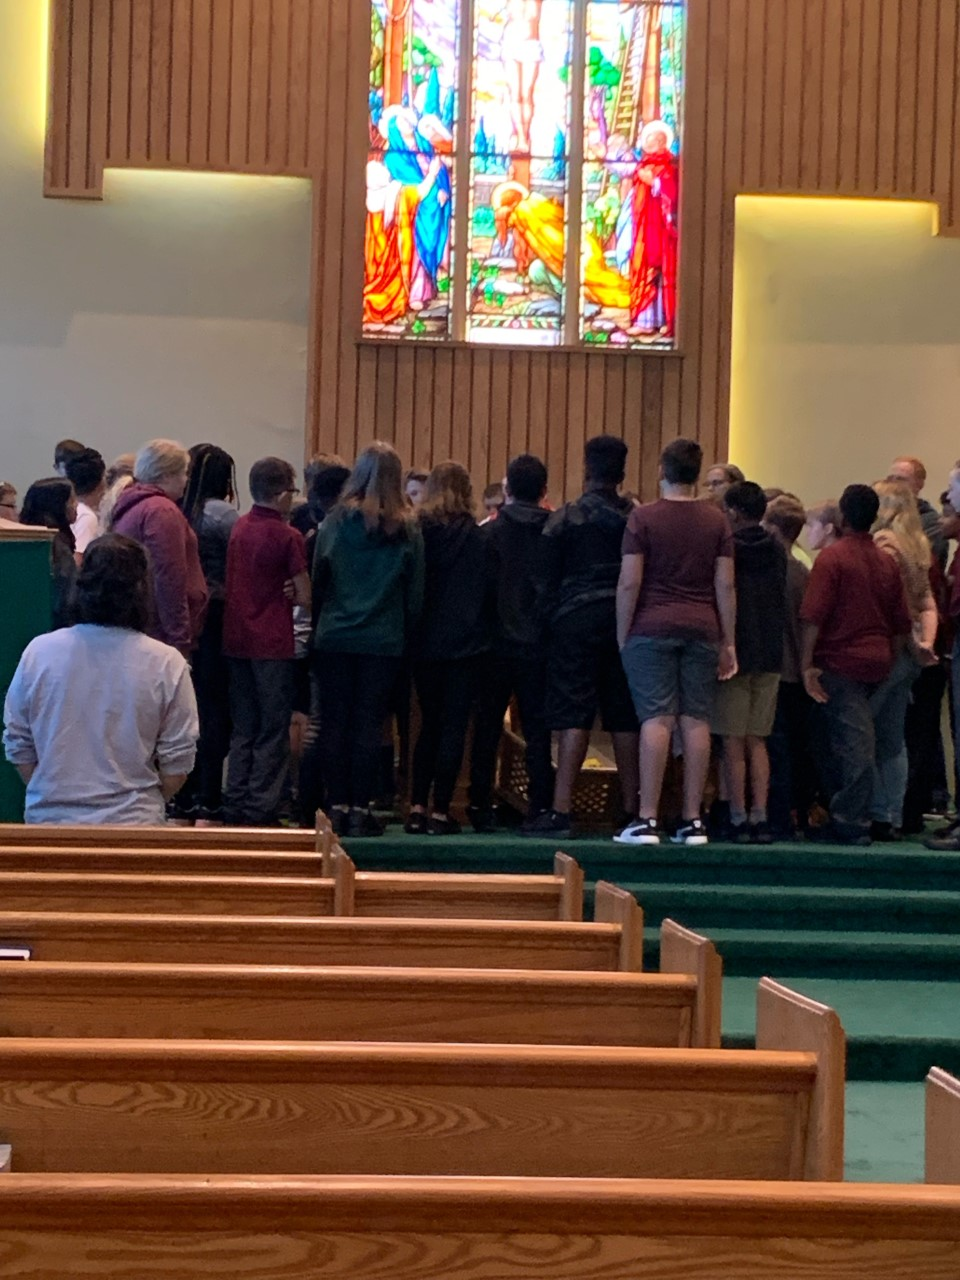 Students standing in a church